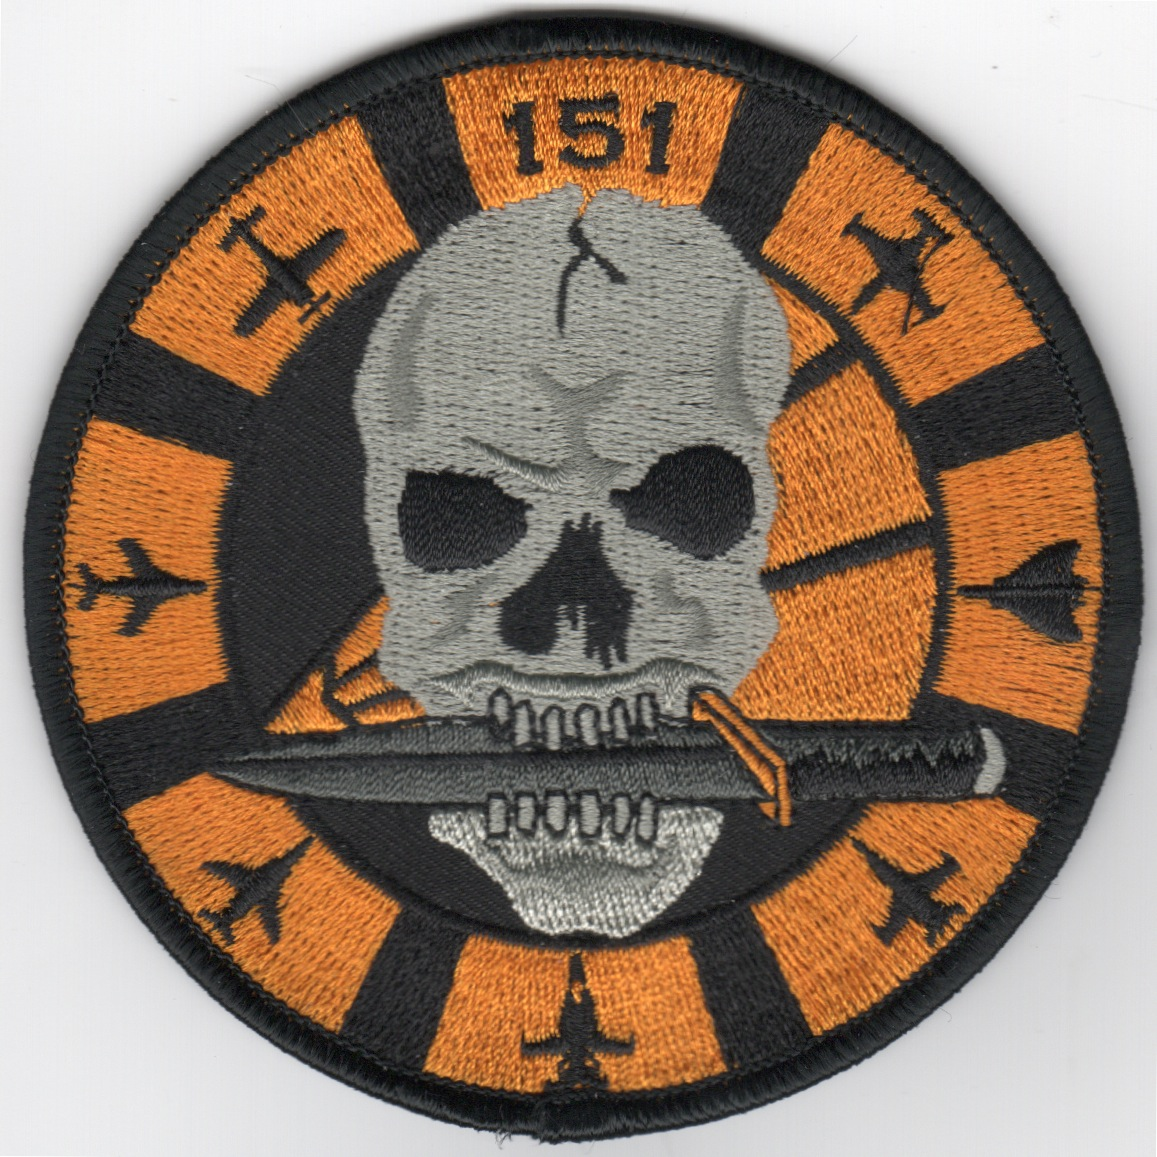 VFA-151 'Skull' Bullet Patch (Lrg/Blk-Ylw/AC/No Velcro)